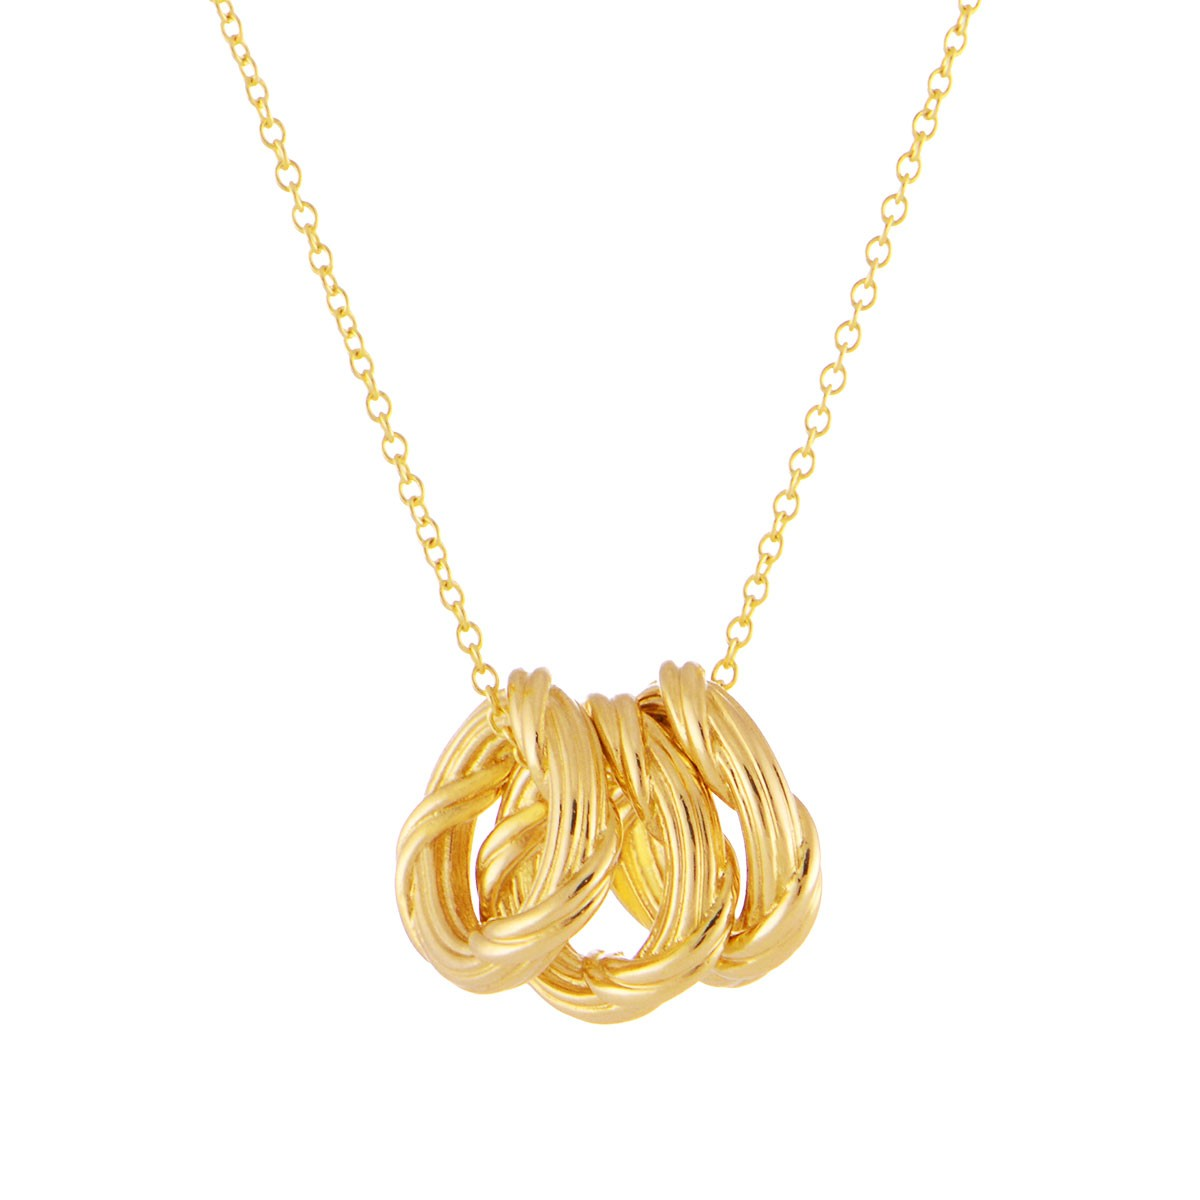 yellow necklace s mens di milano men falco products modolo chain gold